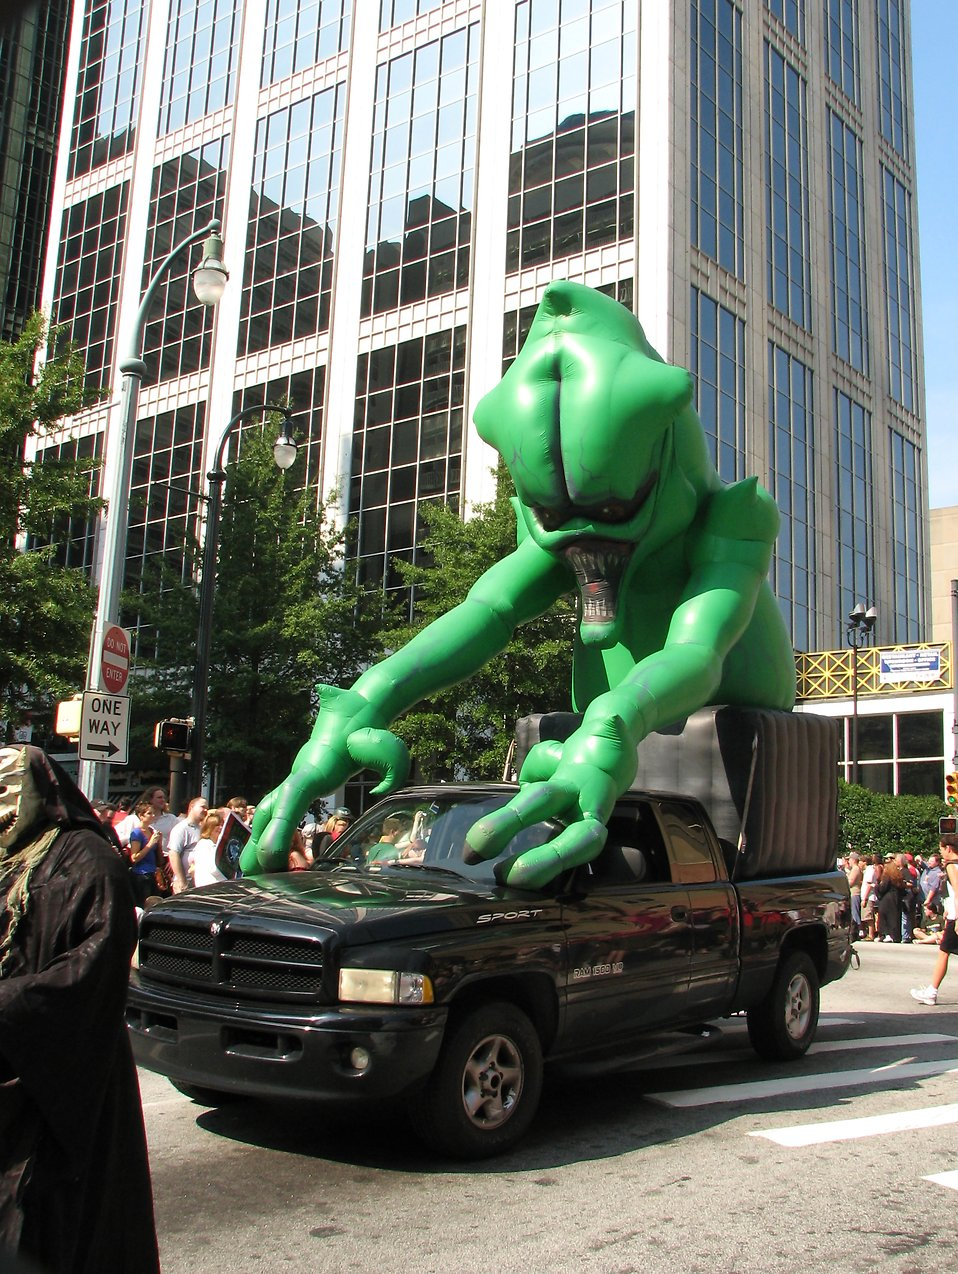 Alien balloon on a truck at the 2008 Dragoncon parade : Free Stock Photo